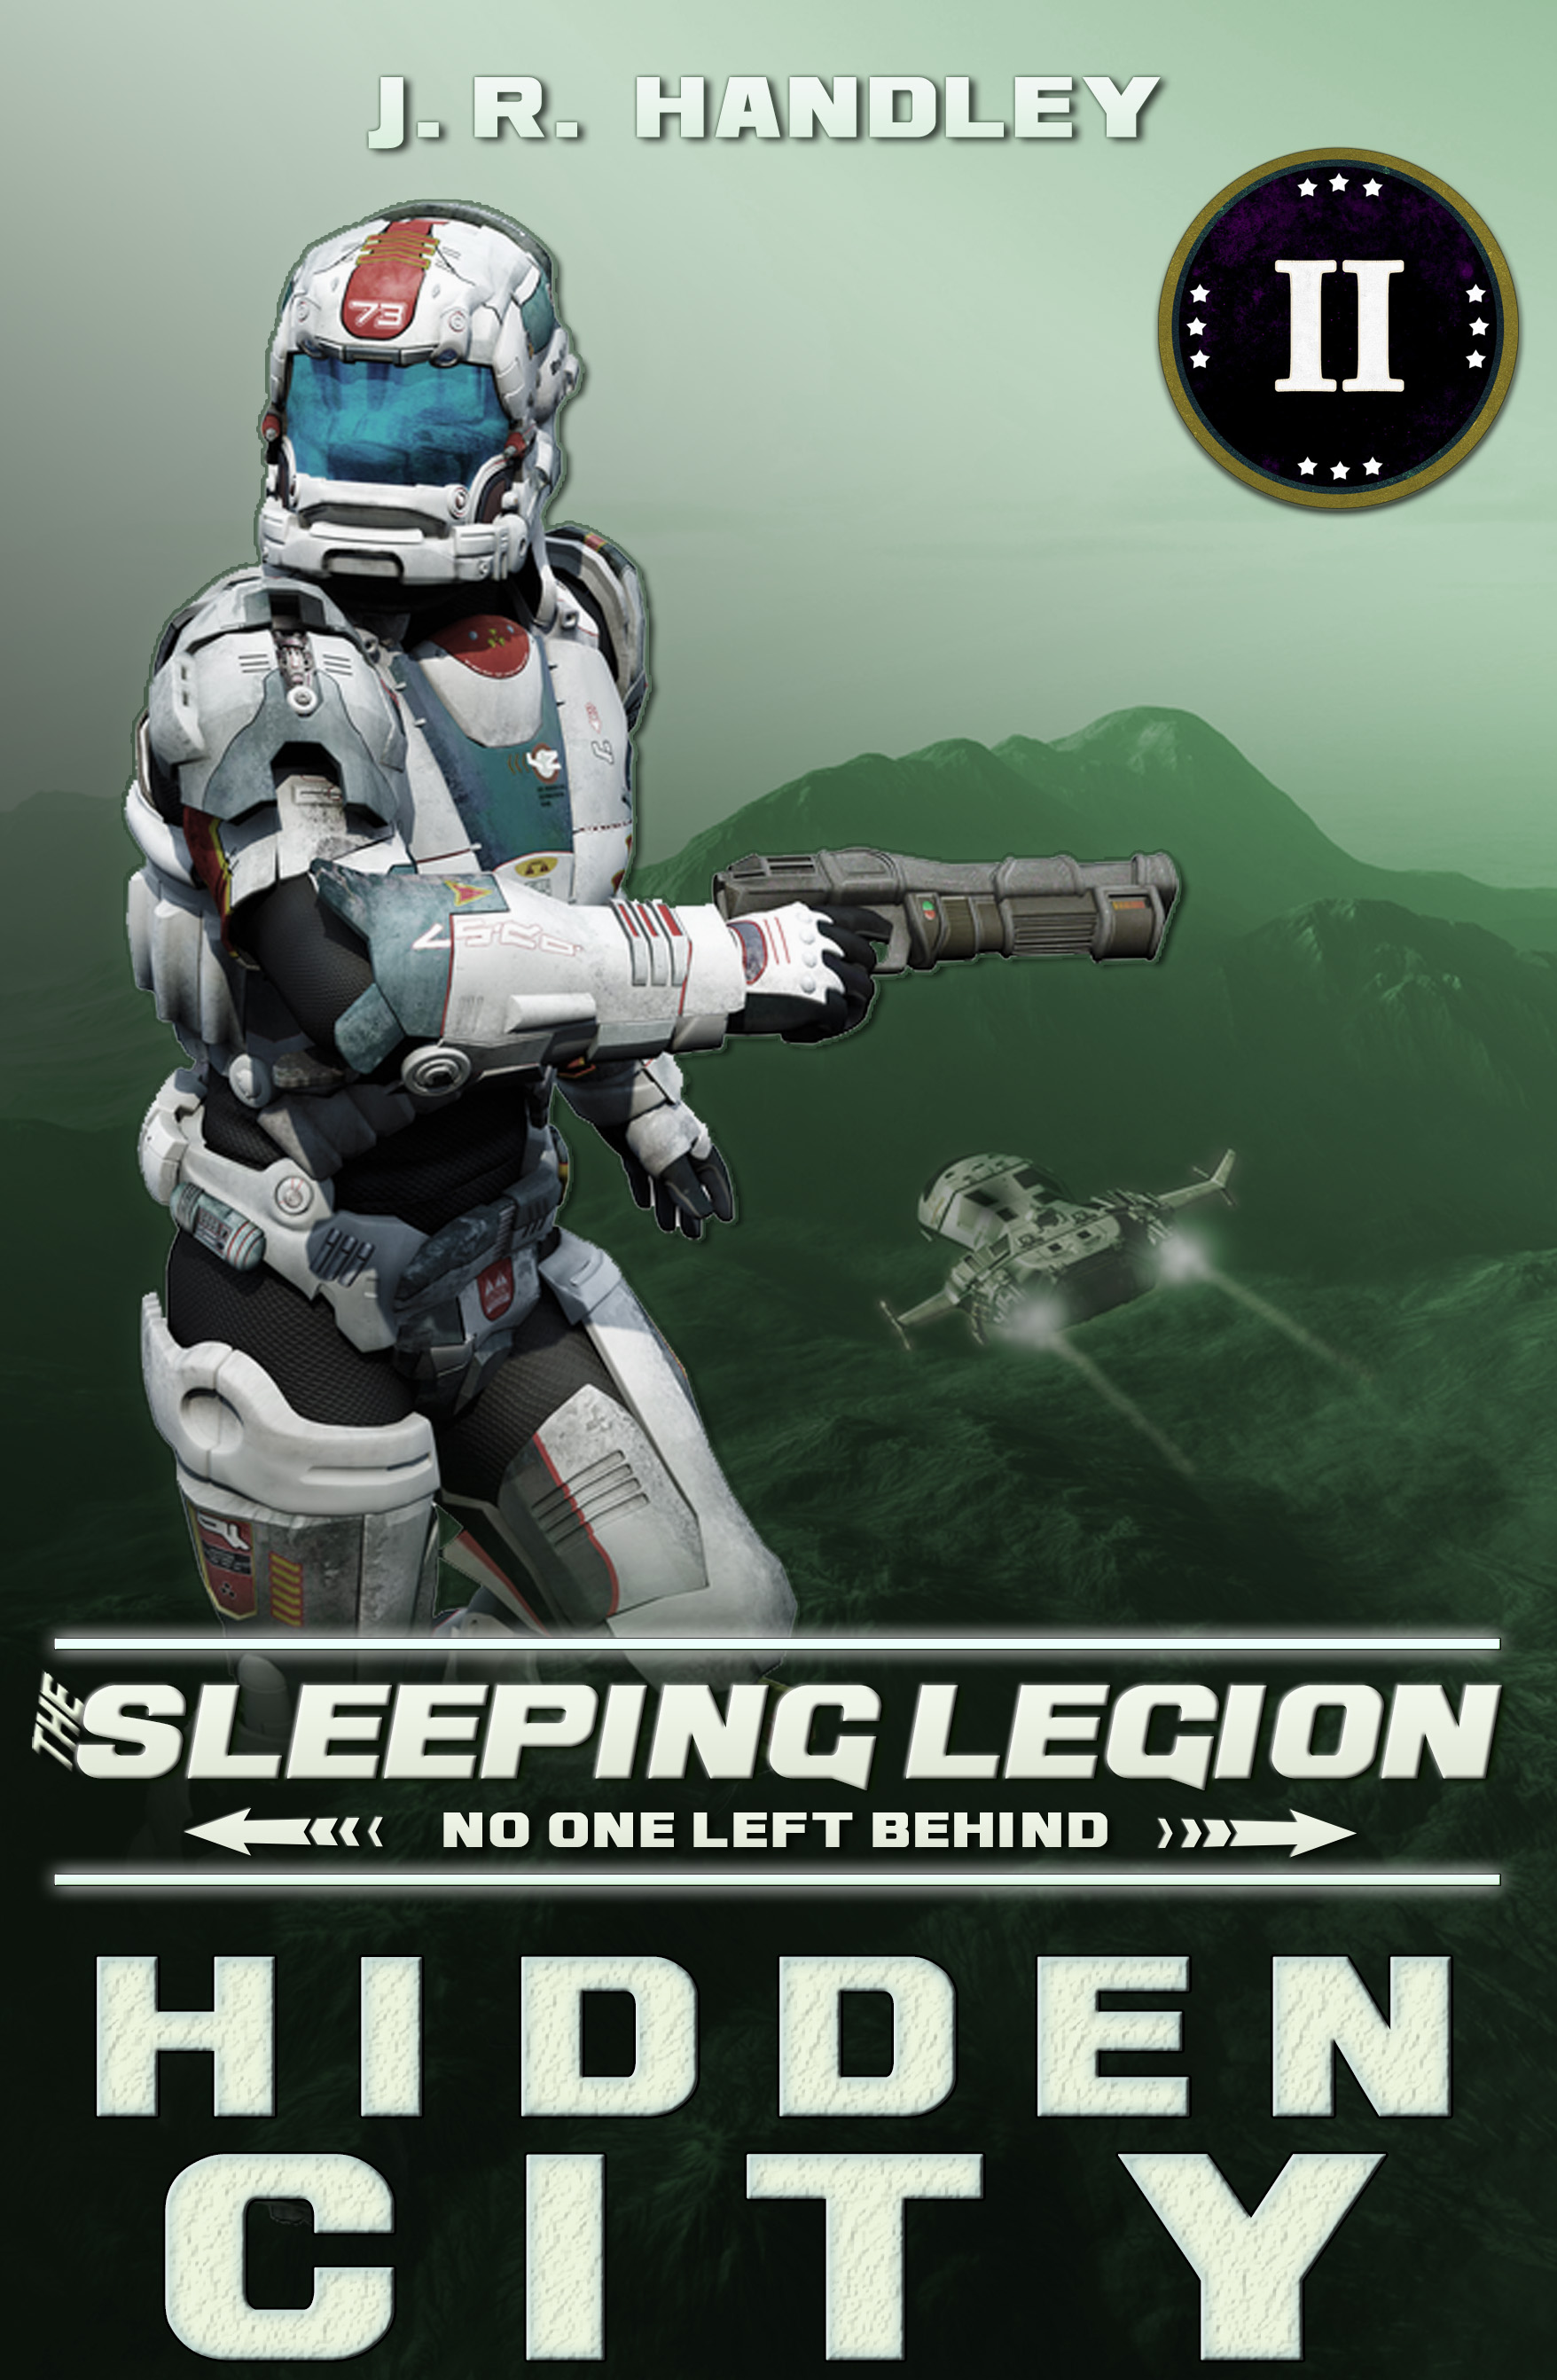 SleepingLegion_Book2_03_flat